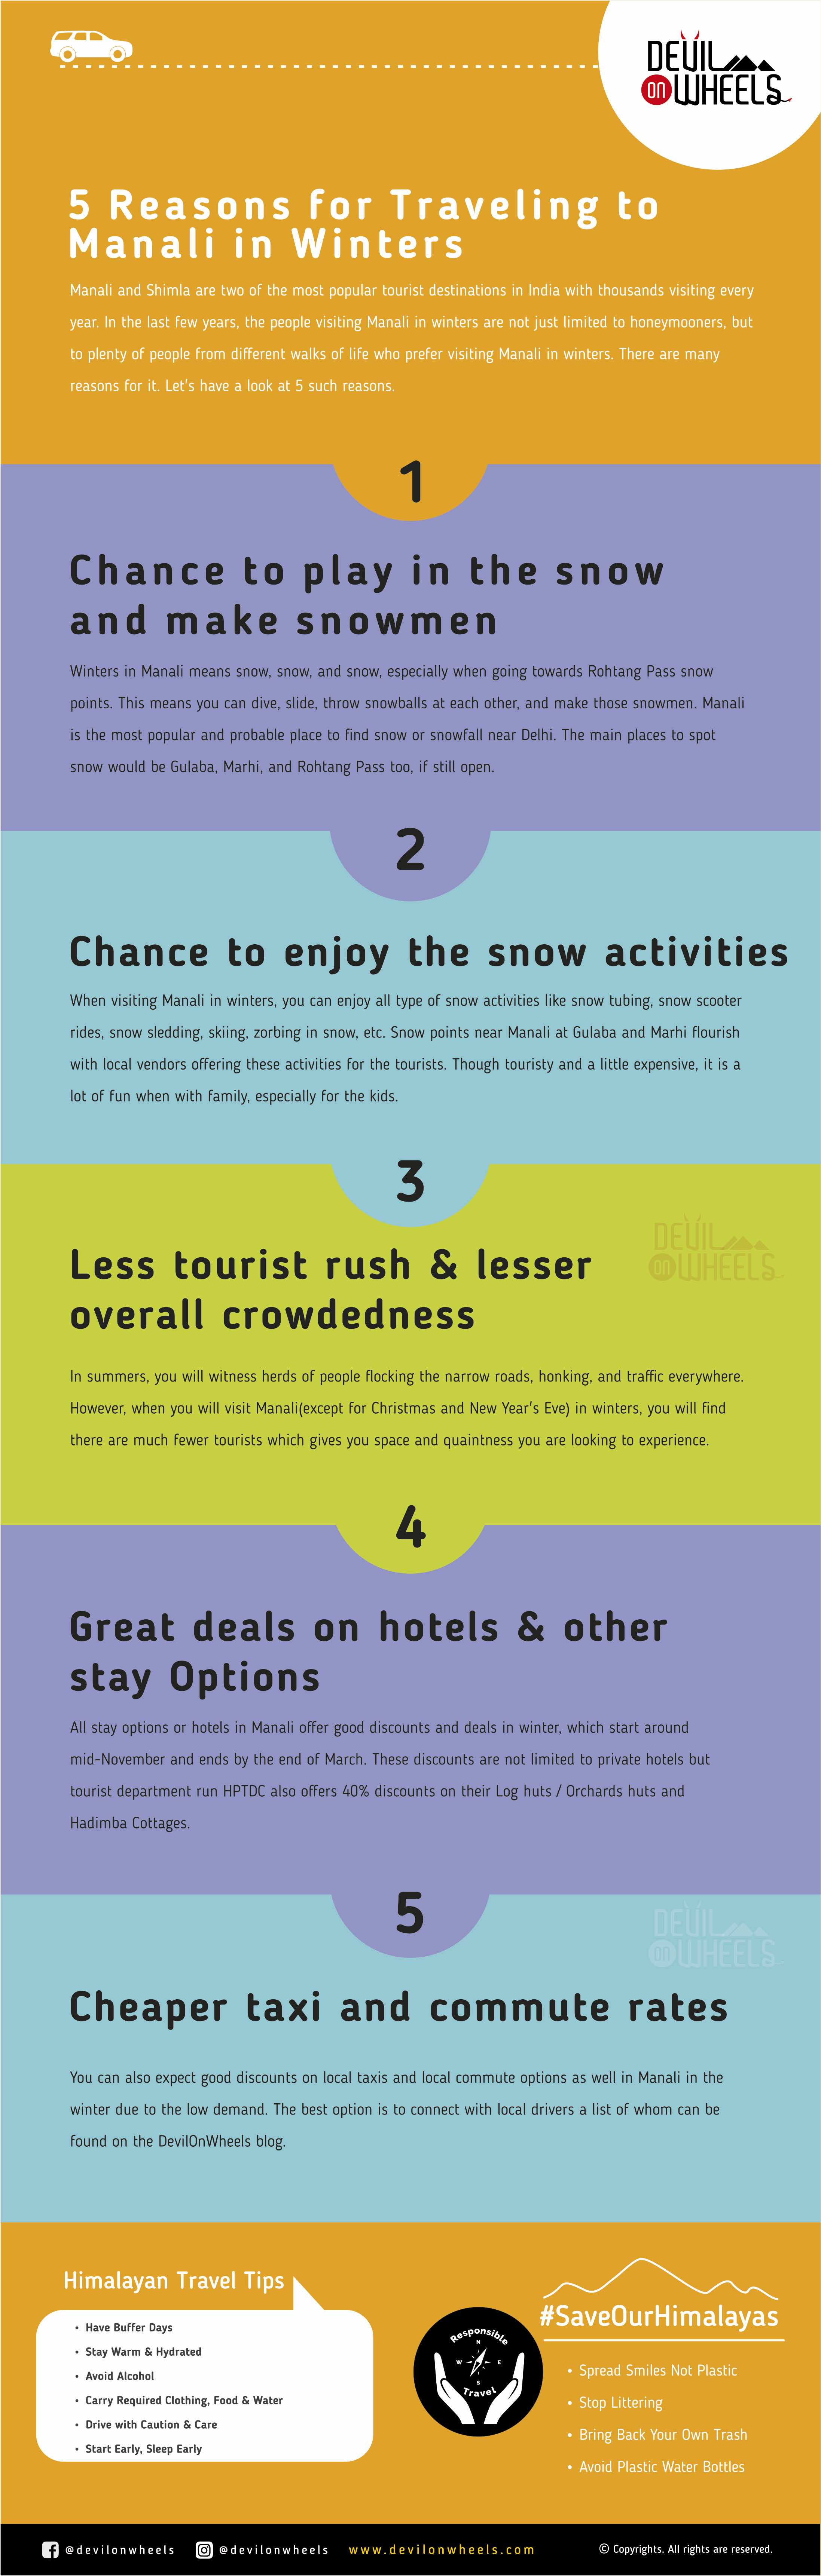 Why you should travel to Manali in Winters